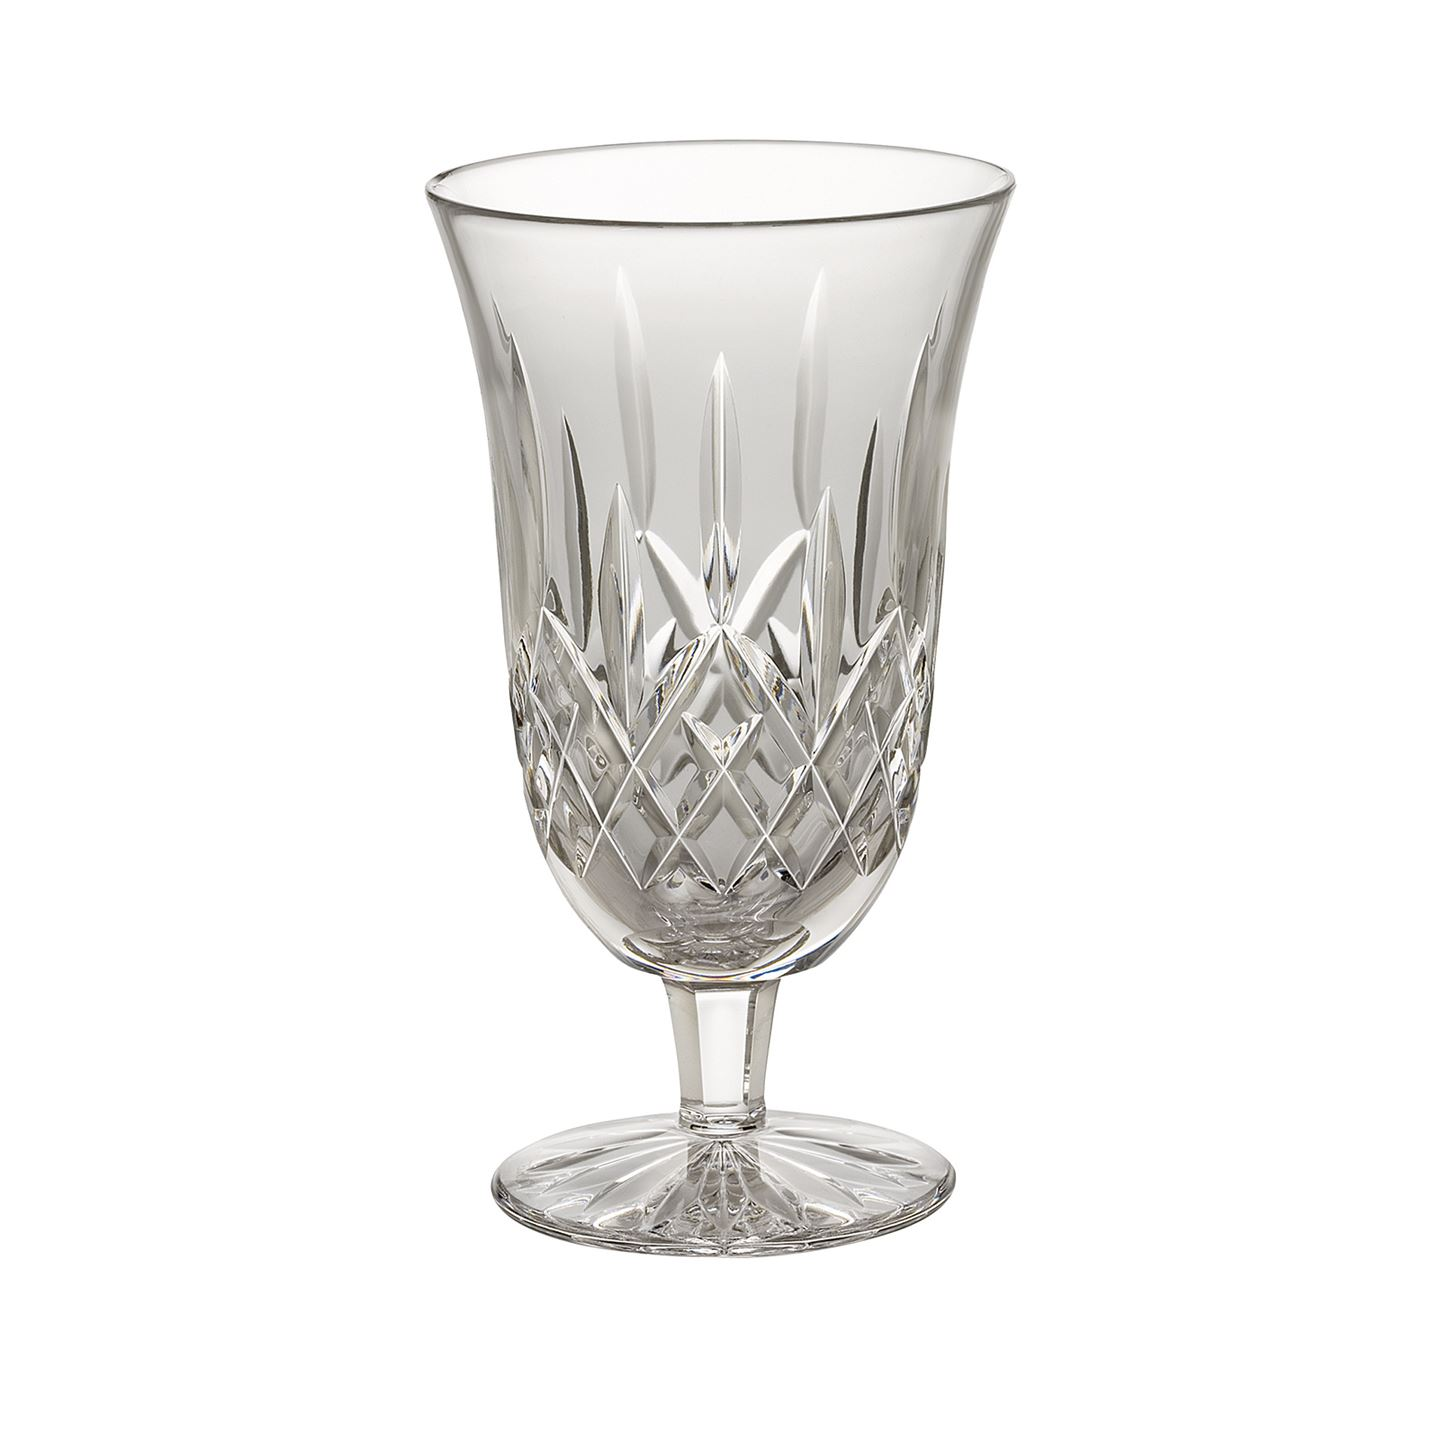 12-Ounce Waterford Wynnewood Iced Beverage